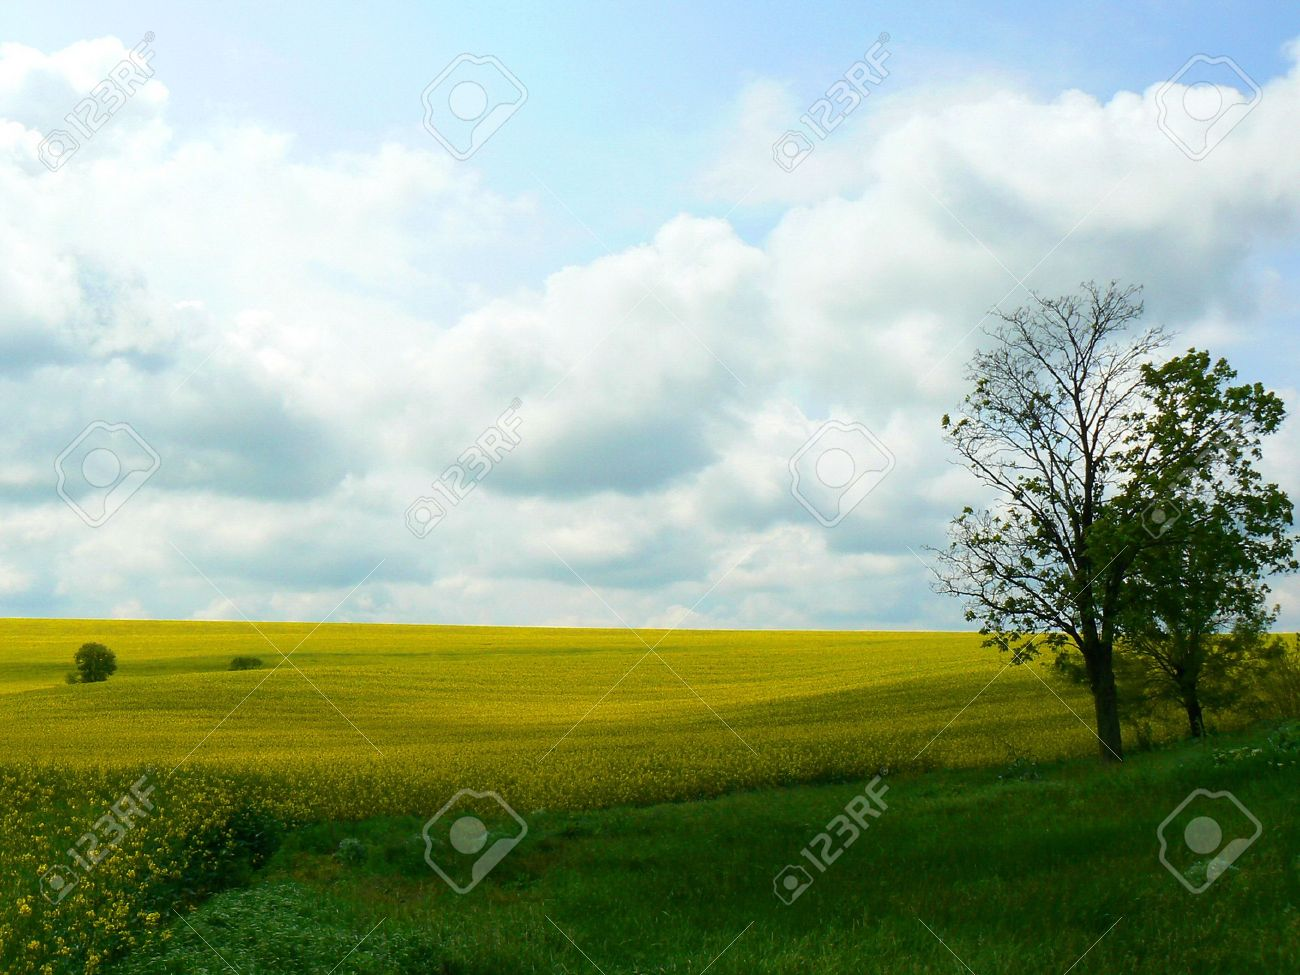 grassy field background. Outdoor Landscape With Green Grassy Field In Foreground And Bright Golden  Yellow Background Against